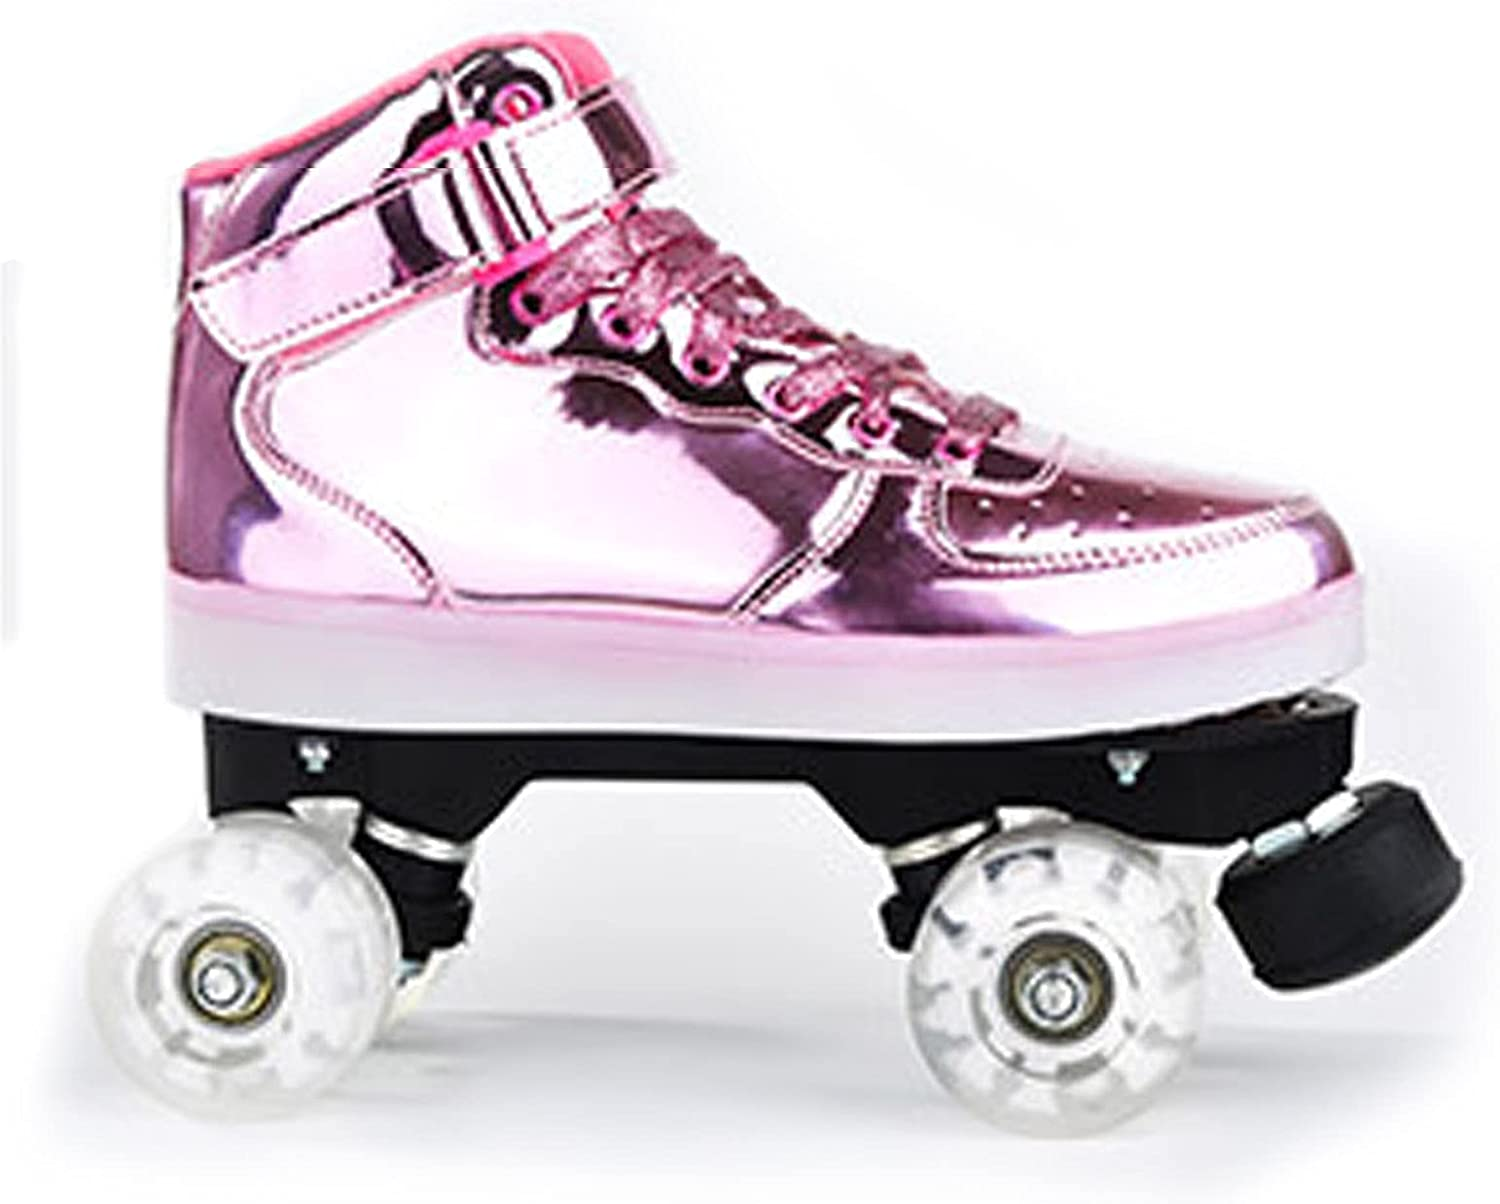 ZHUAN Roller Skate Shoes Double Adult Ro Row Today's SALENEW very popular! only Rechargeable Flash